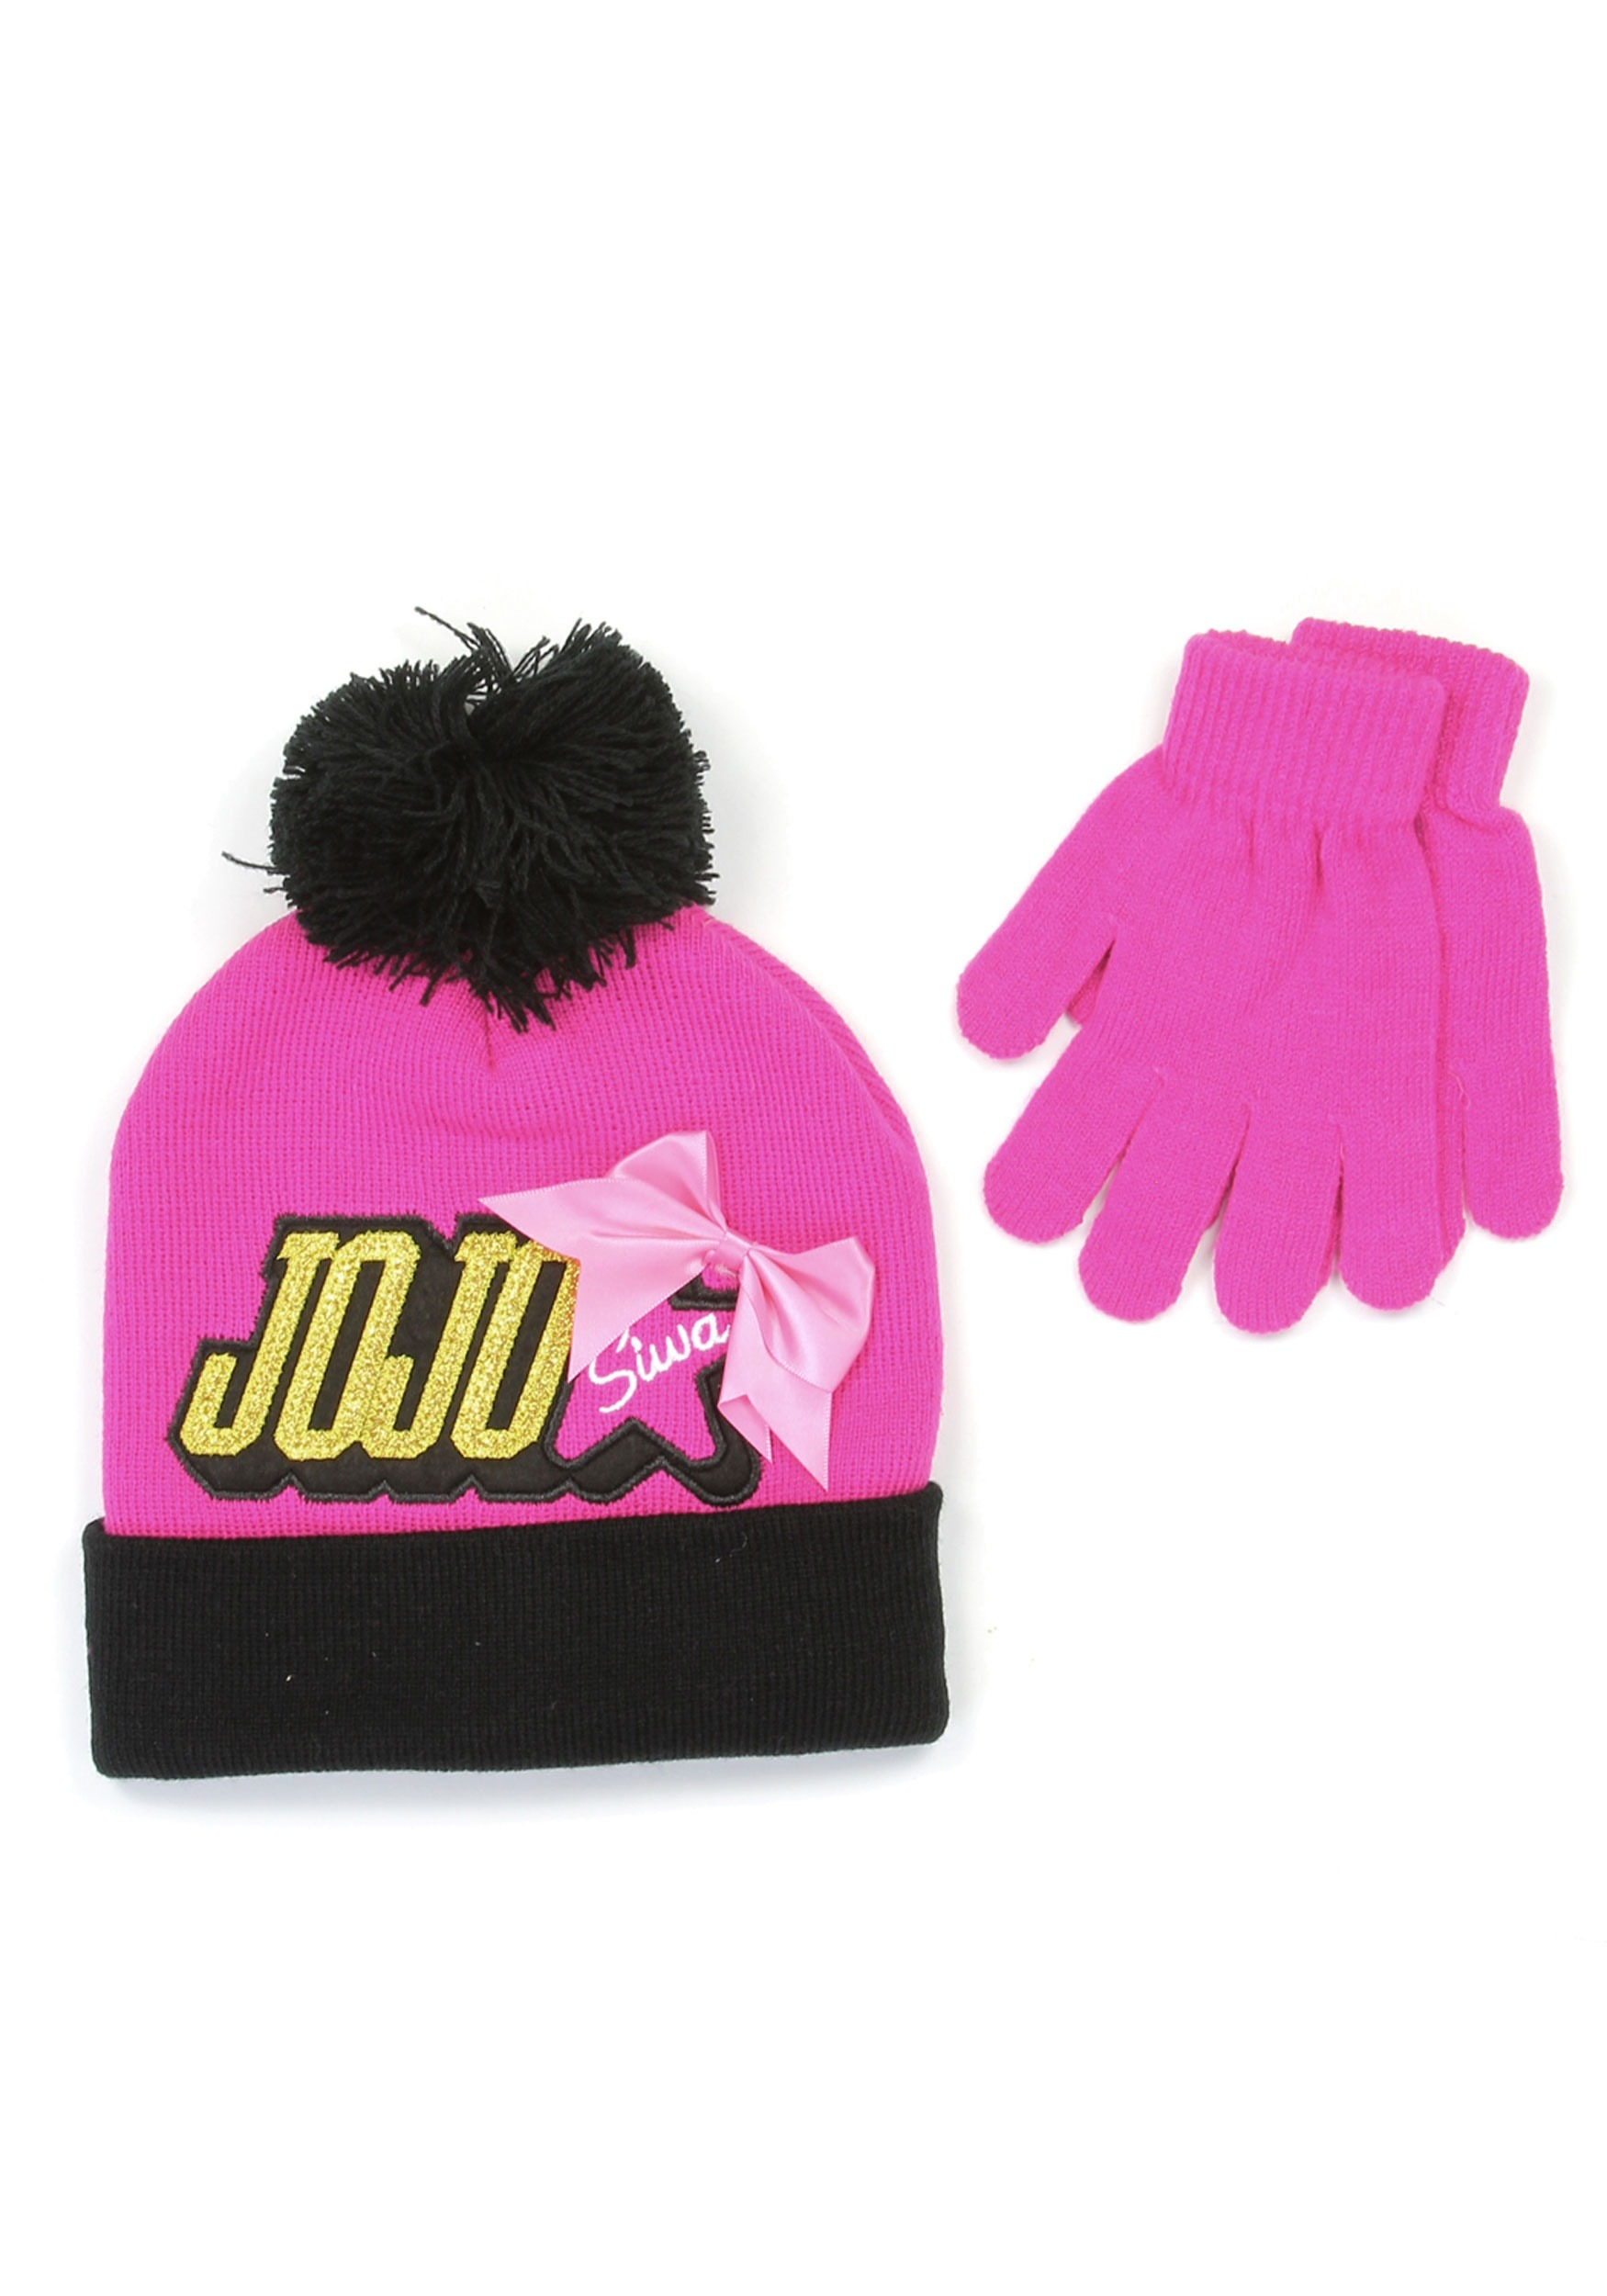 5977a674fe0 JoJo Siwa Winter Hat and Gloves Set for Girls